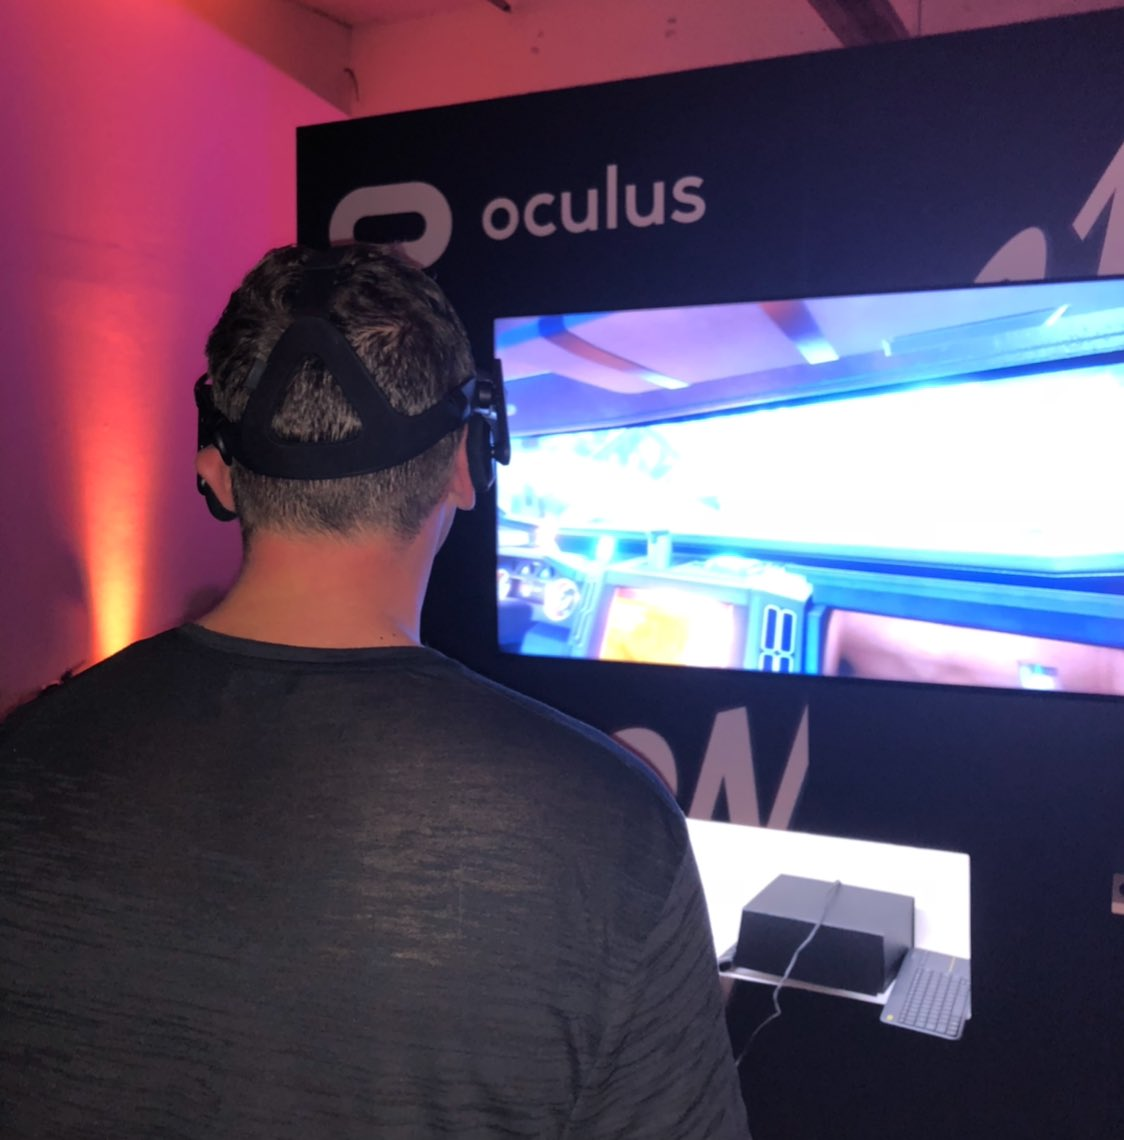 Freaked out by the VR! In a good way  😂  #OculusRift @OculusRift https://t.co/uhN8RgUzj8